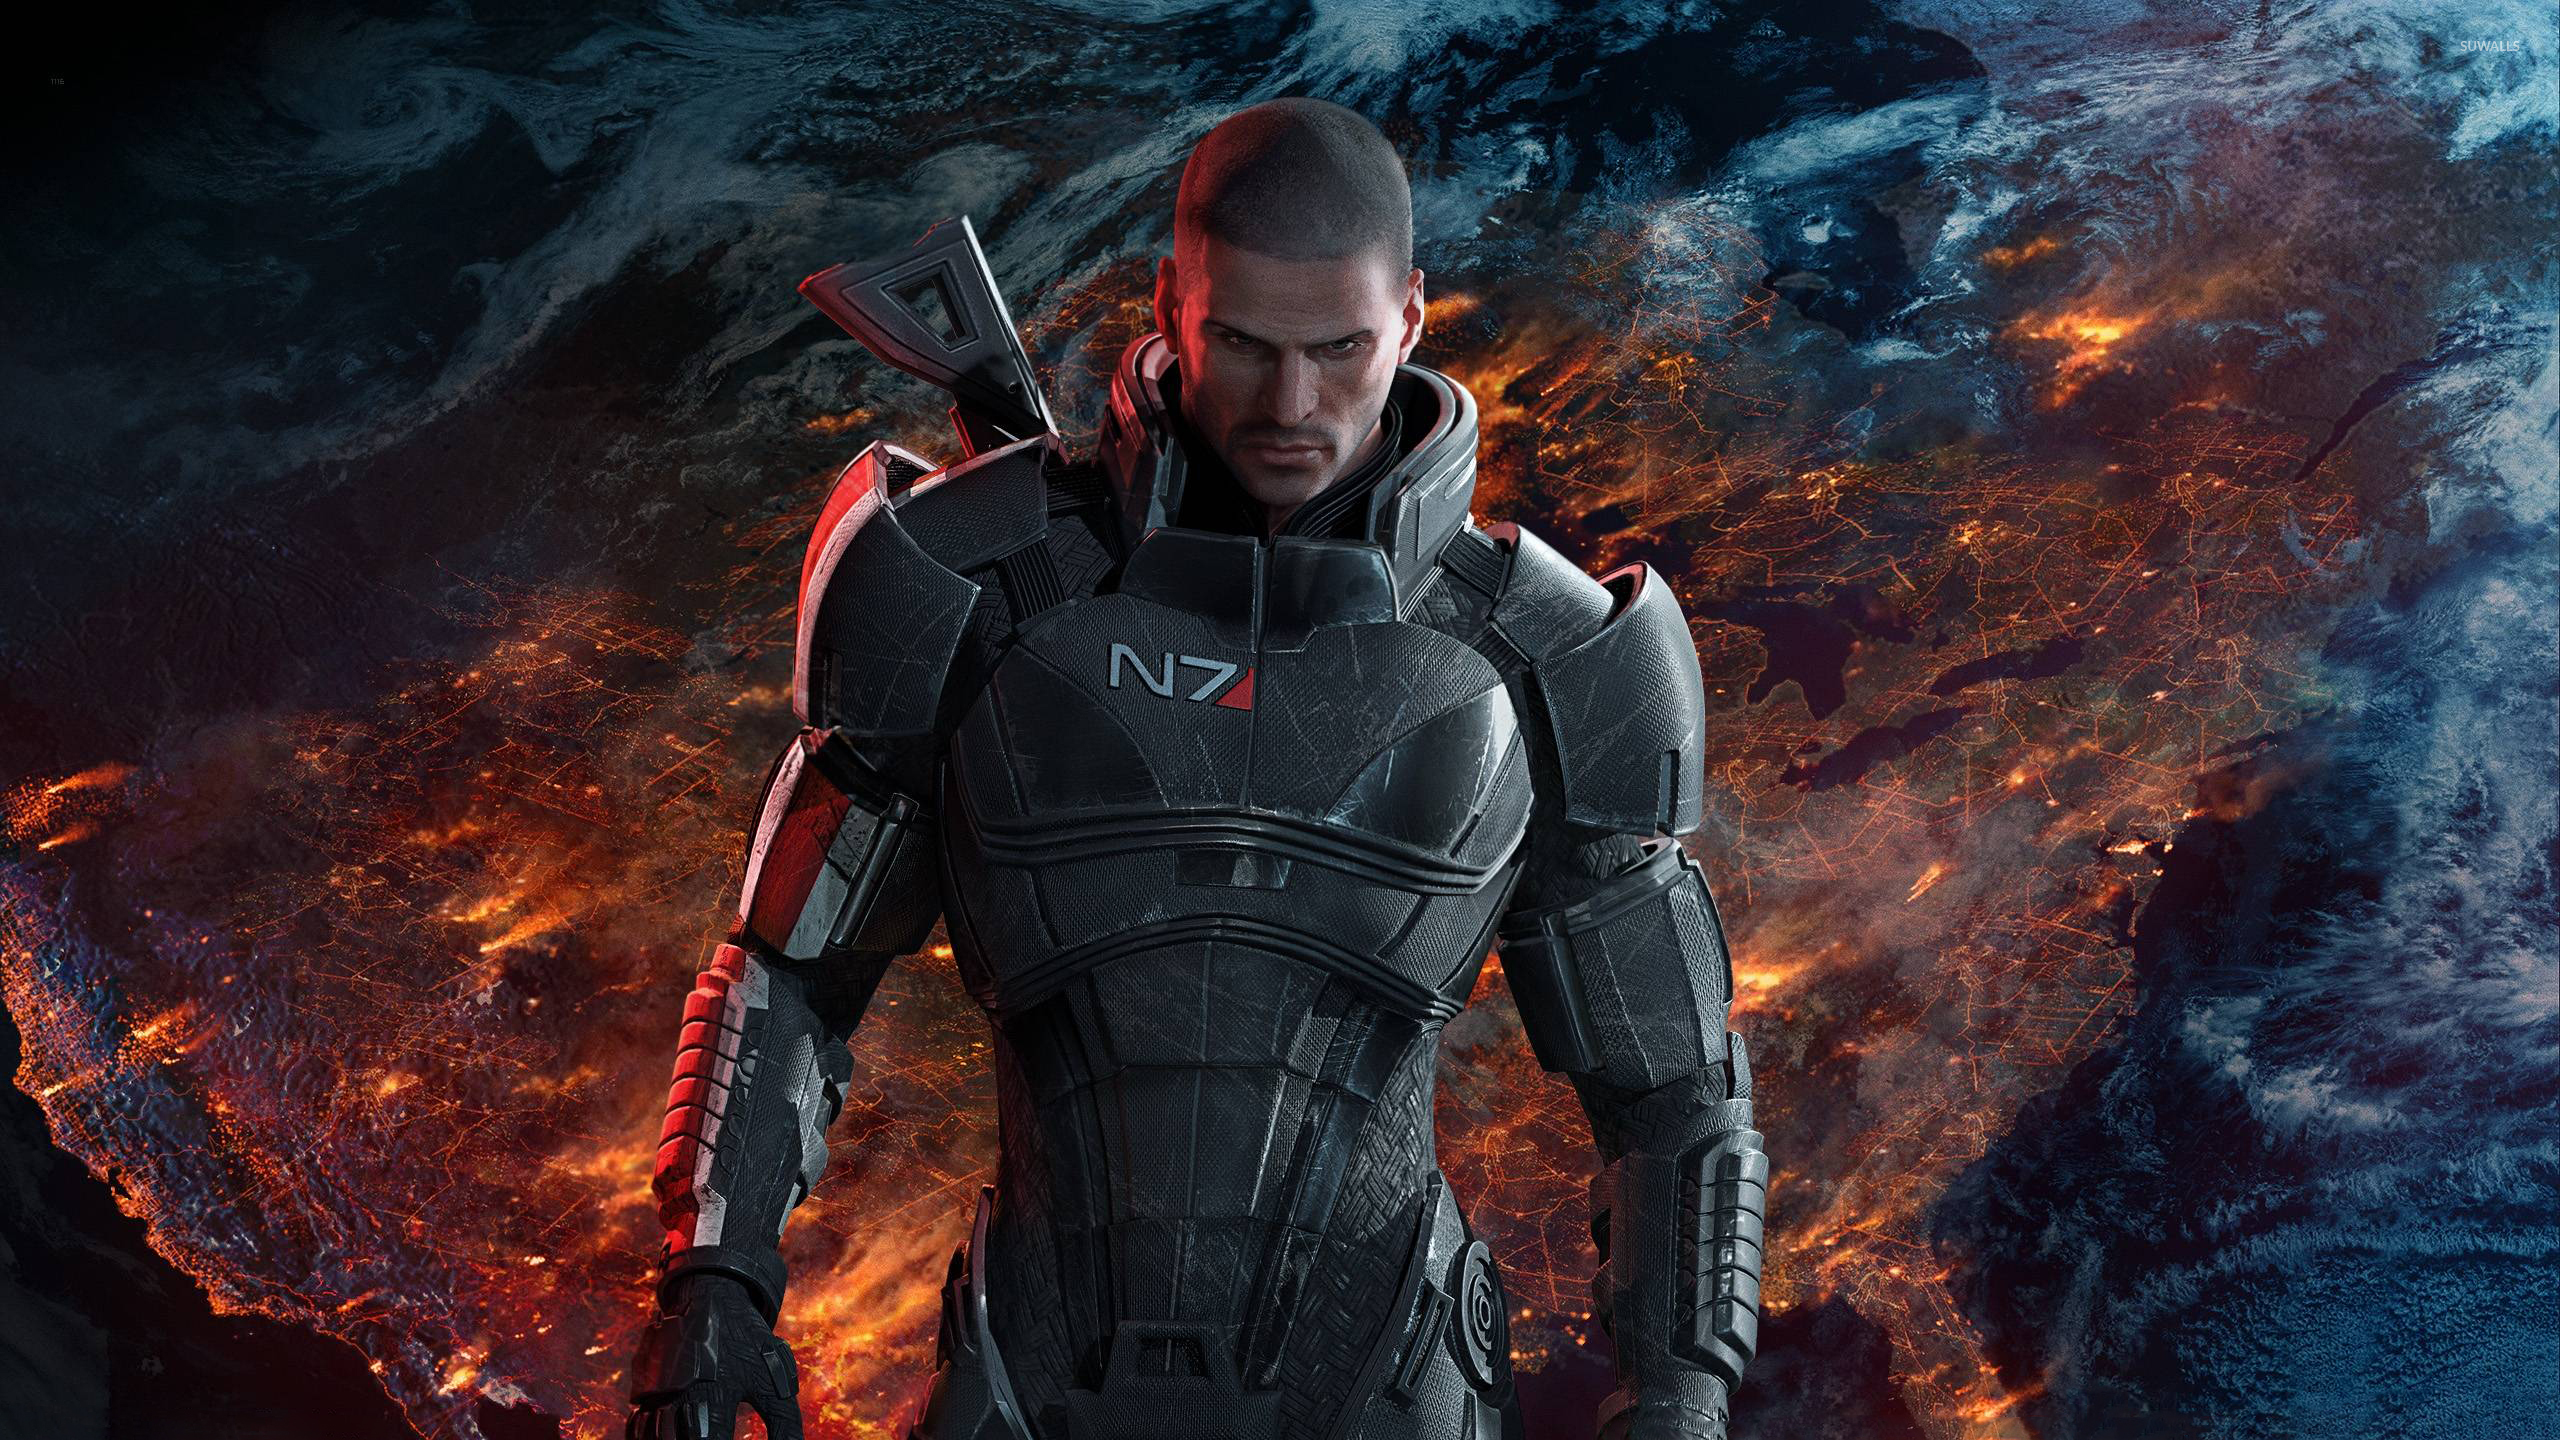 Male Commander Shepard In Mass Effect Wallpaper Game Wallpapers